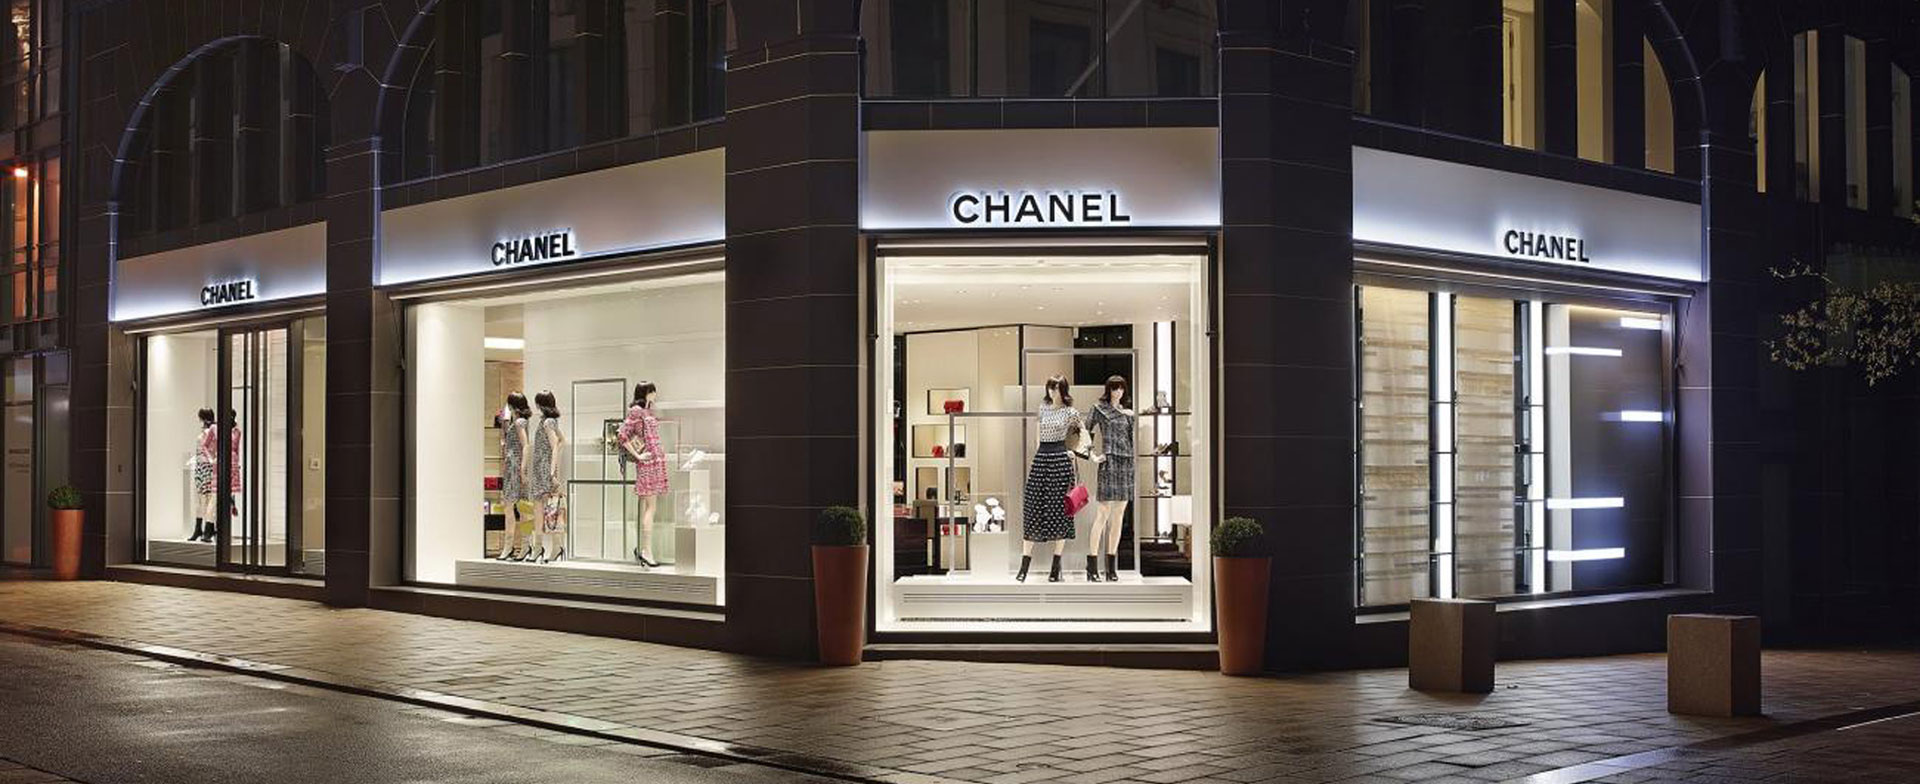 Chanel Hamburg